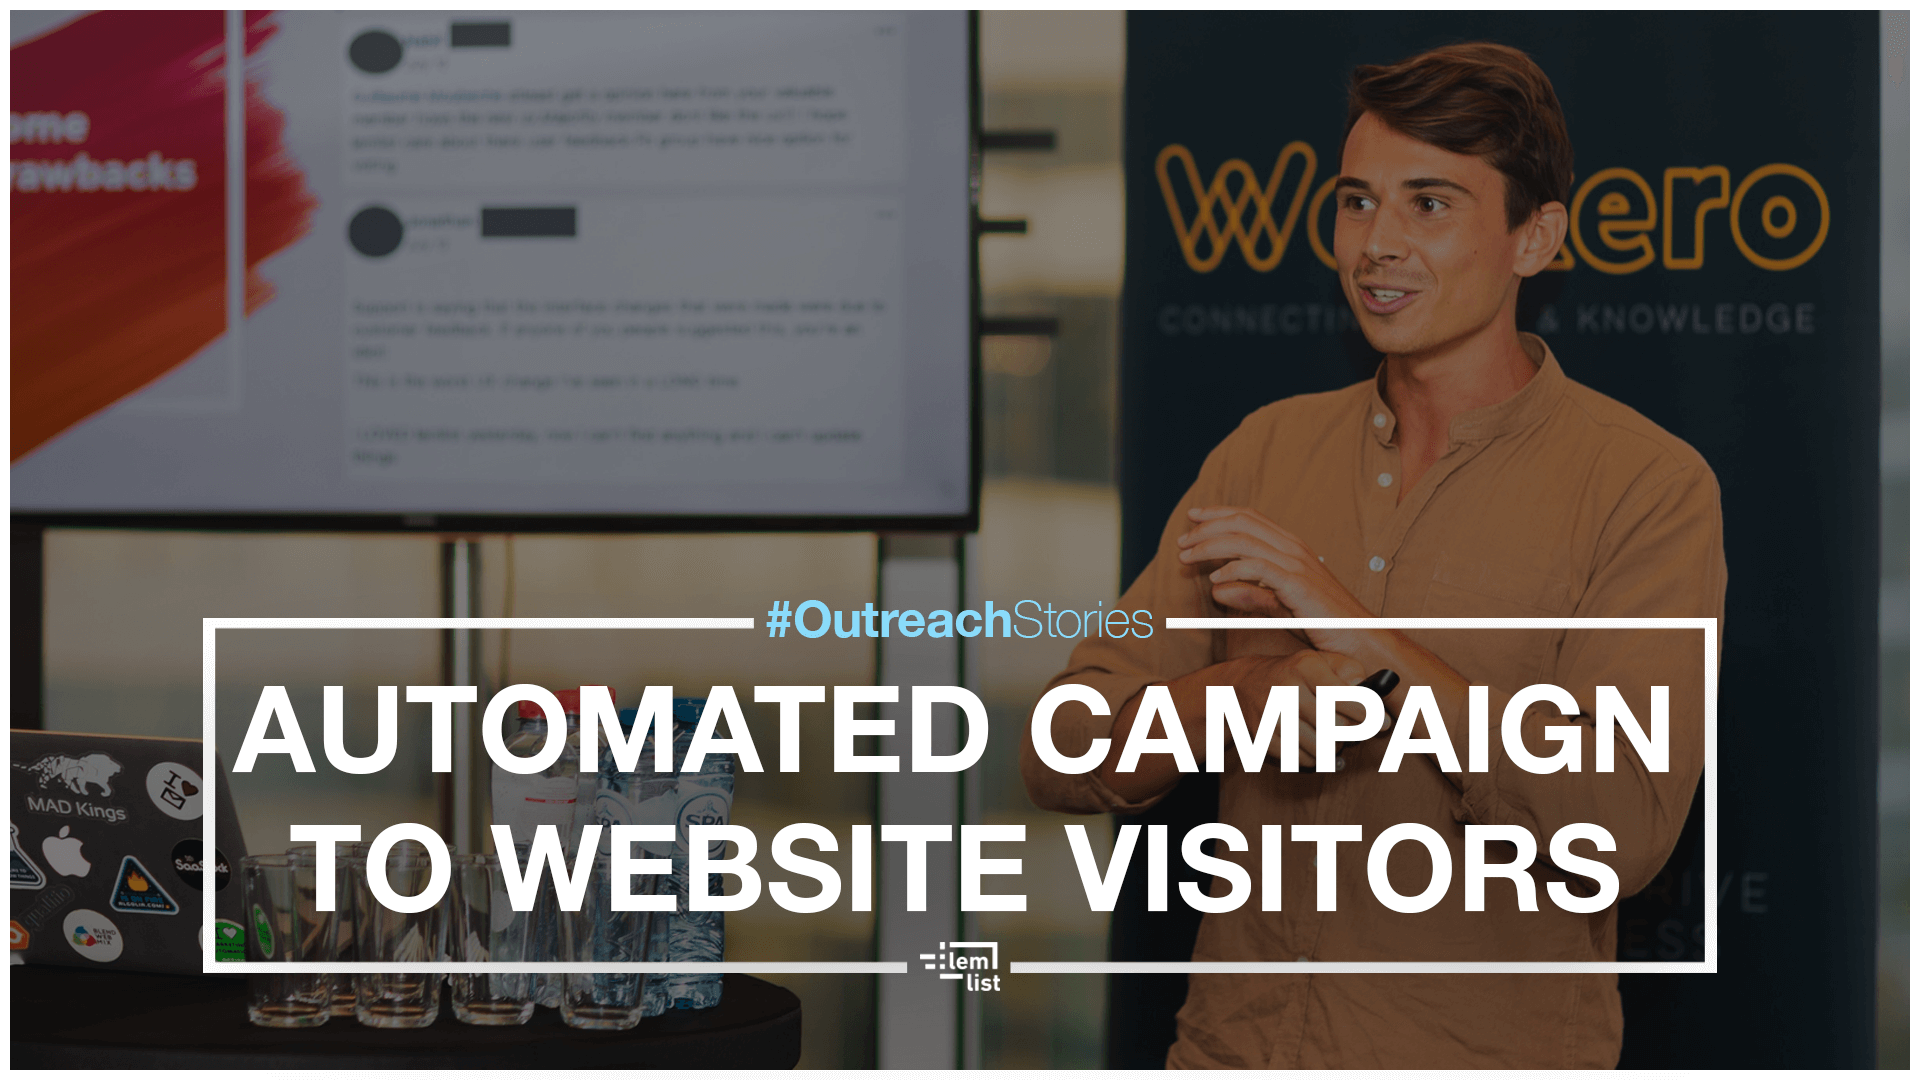 [#OutreachStories] Running an automated campaign to close website visitors